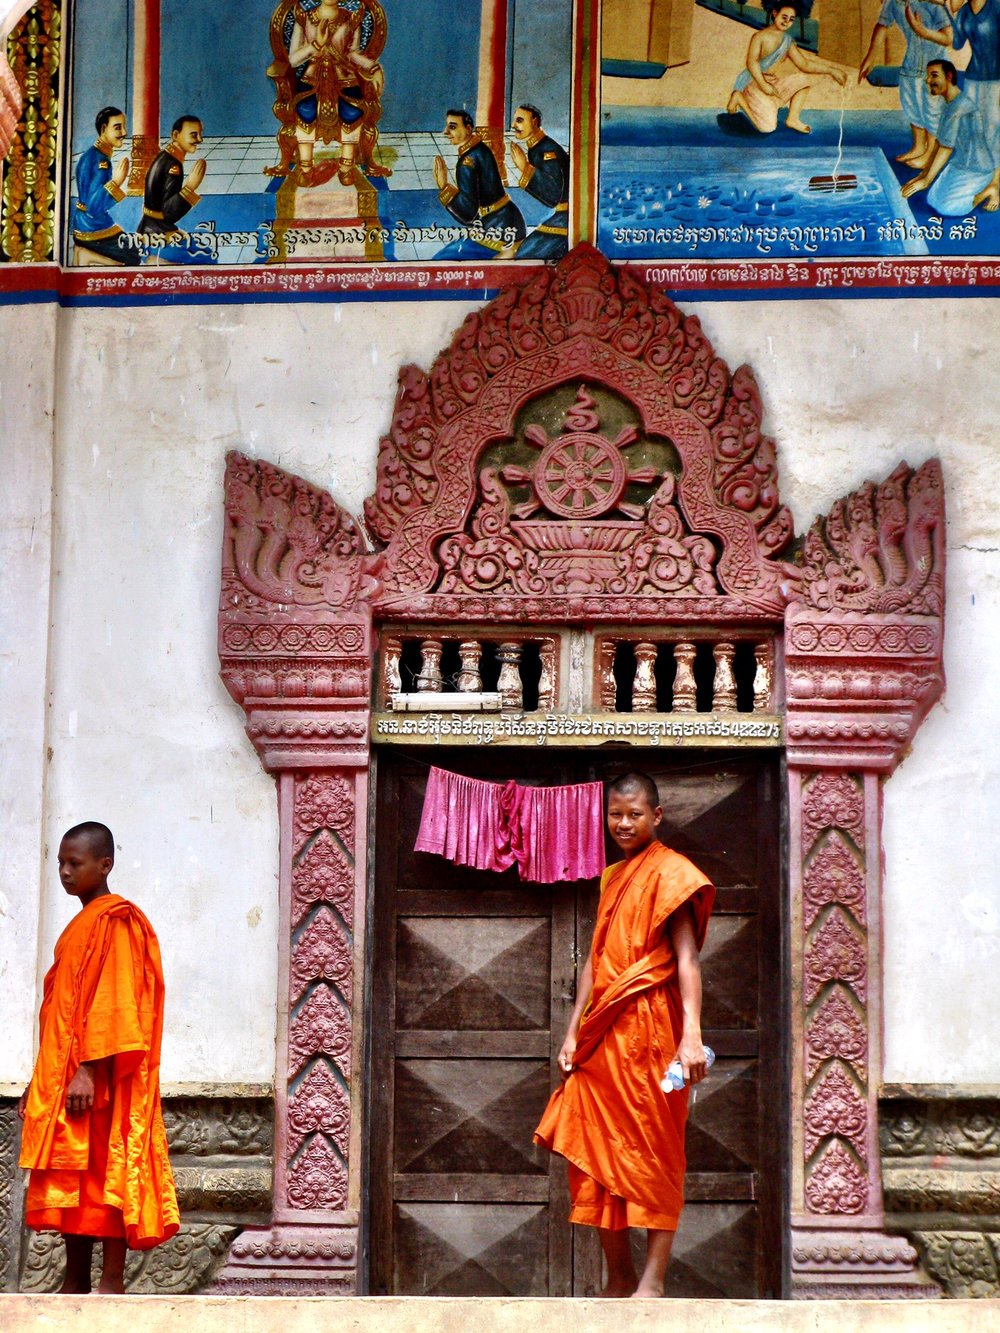 The telltale bright orange saffron-dyed robes of Buddhist monks is always a pleasant sight